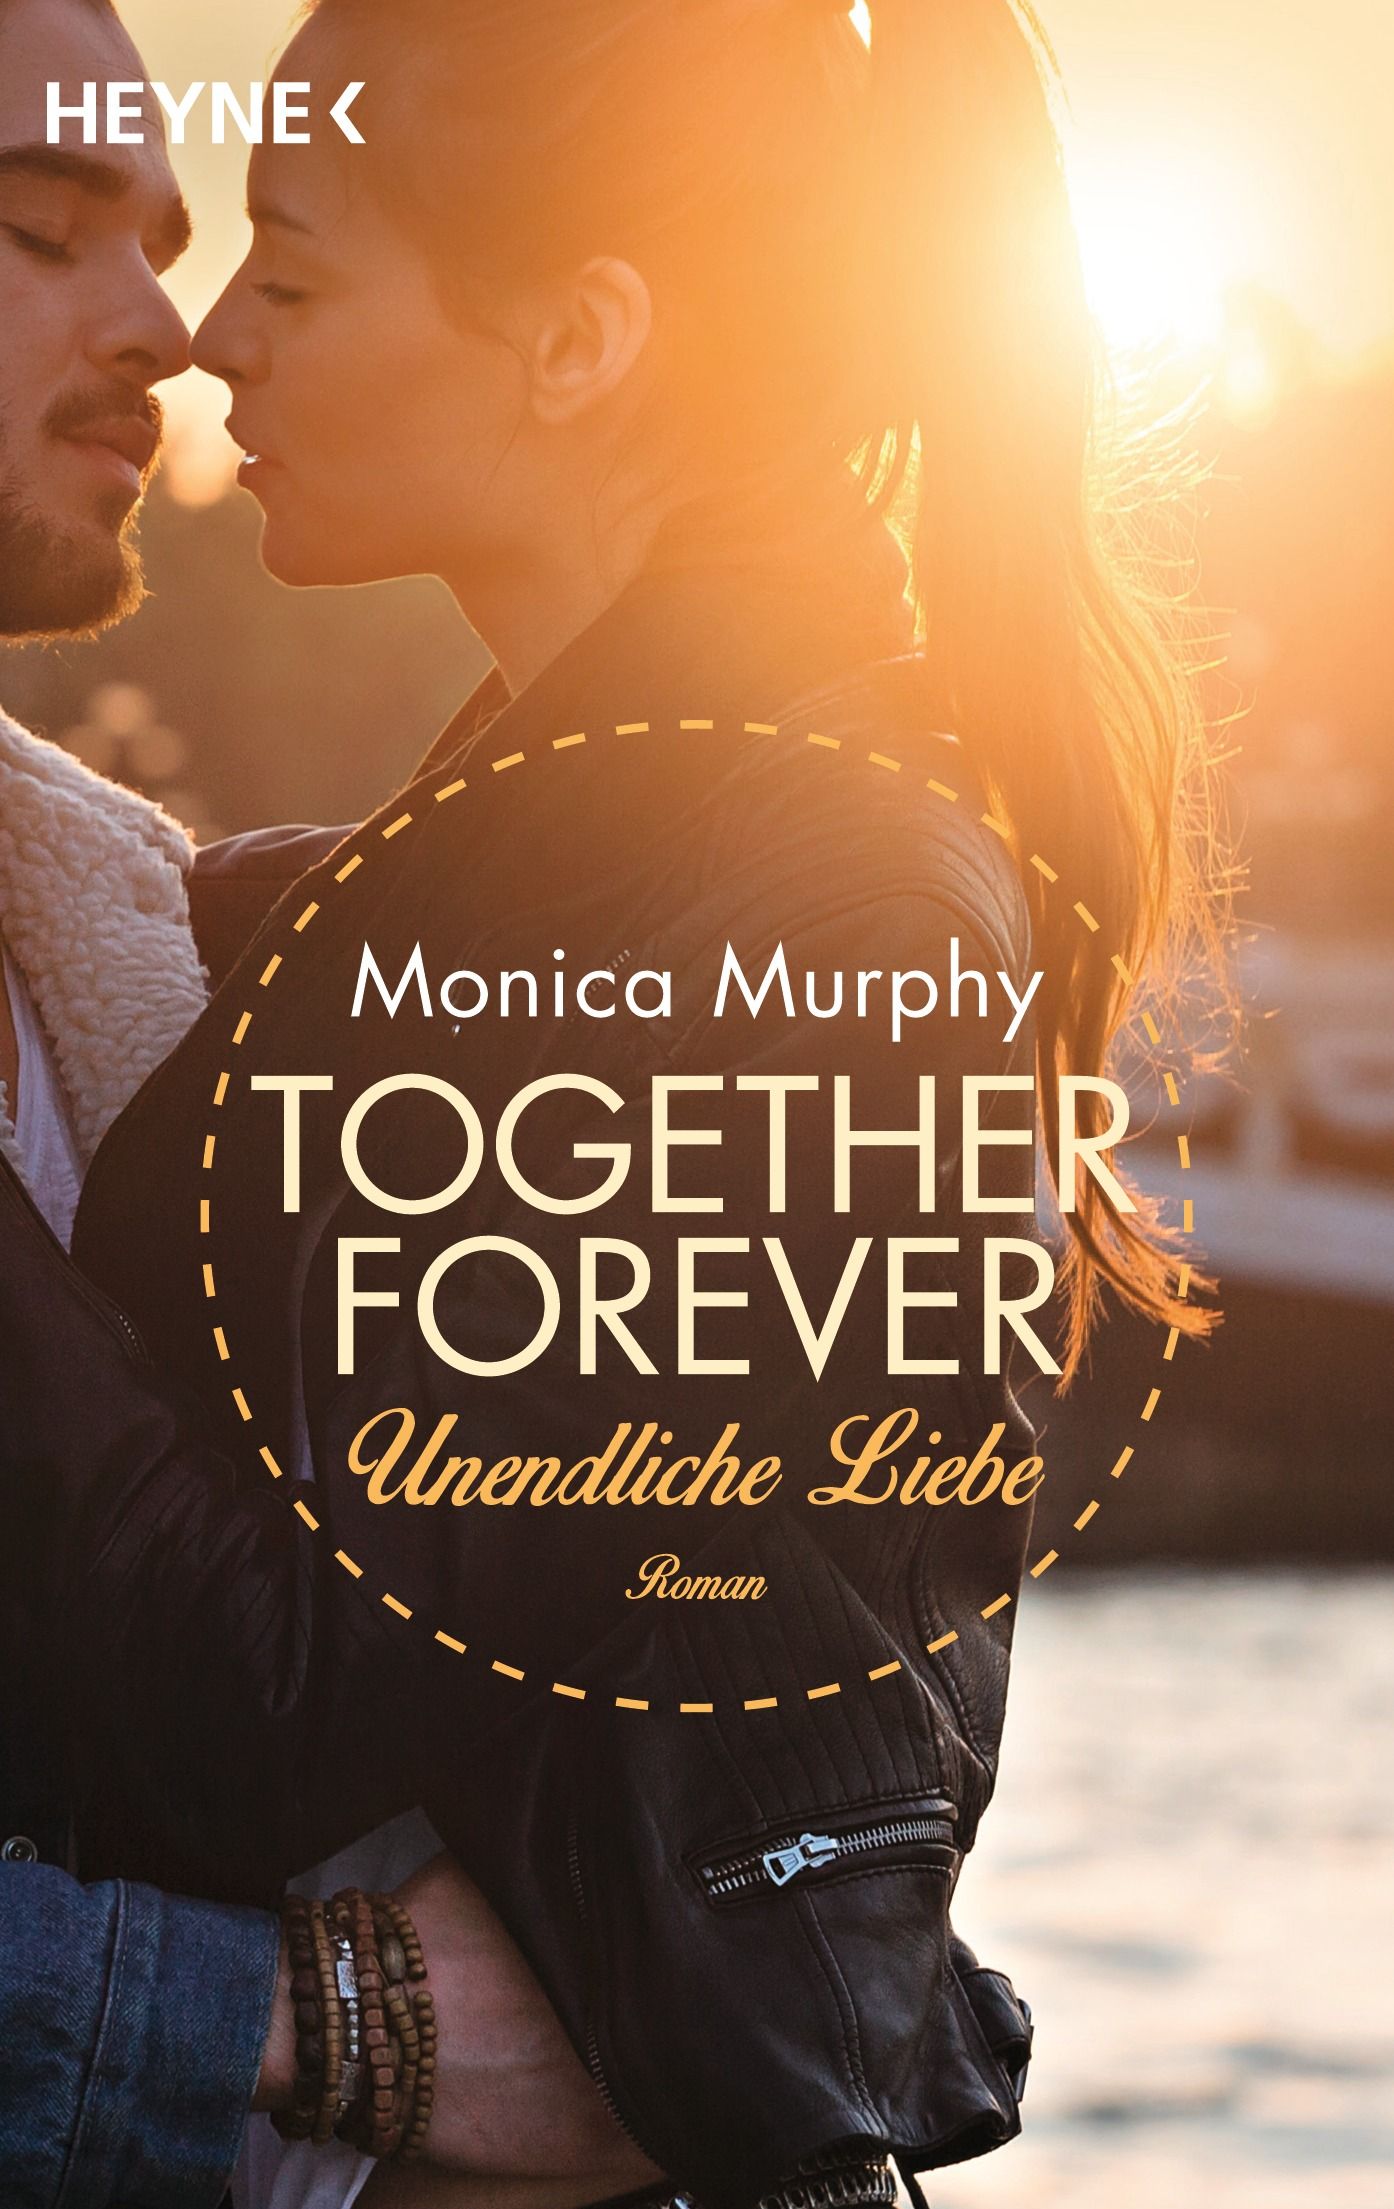 http://www.randomhouse.de/content/edition/covervoila_hires/Murphy_MUnendliche_Liebe_Together_4_165582.jpg